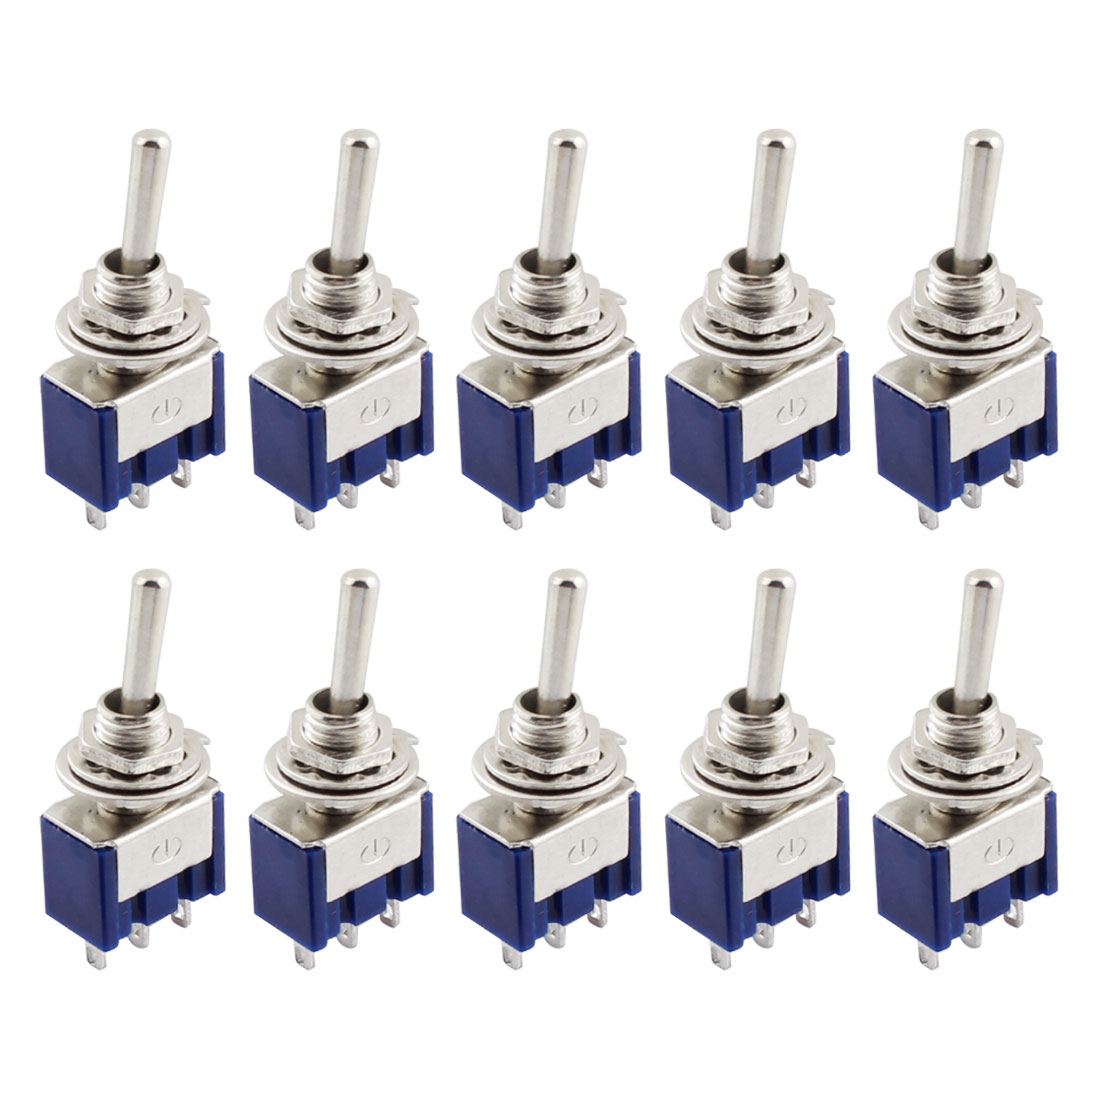 AC125V 6A SPDT 3 Terminals On-Off-On Rocker Toggle Switch 10 Pieces